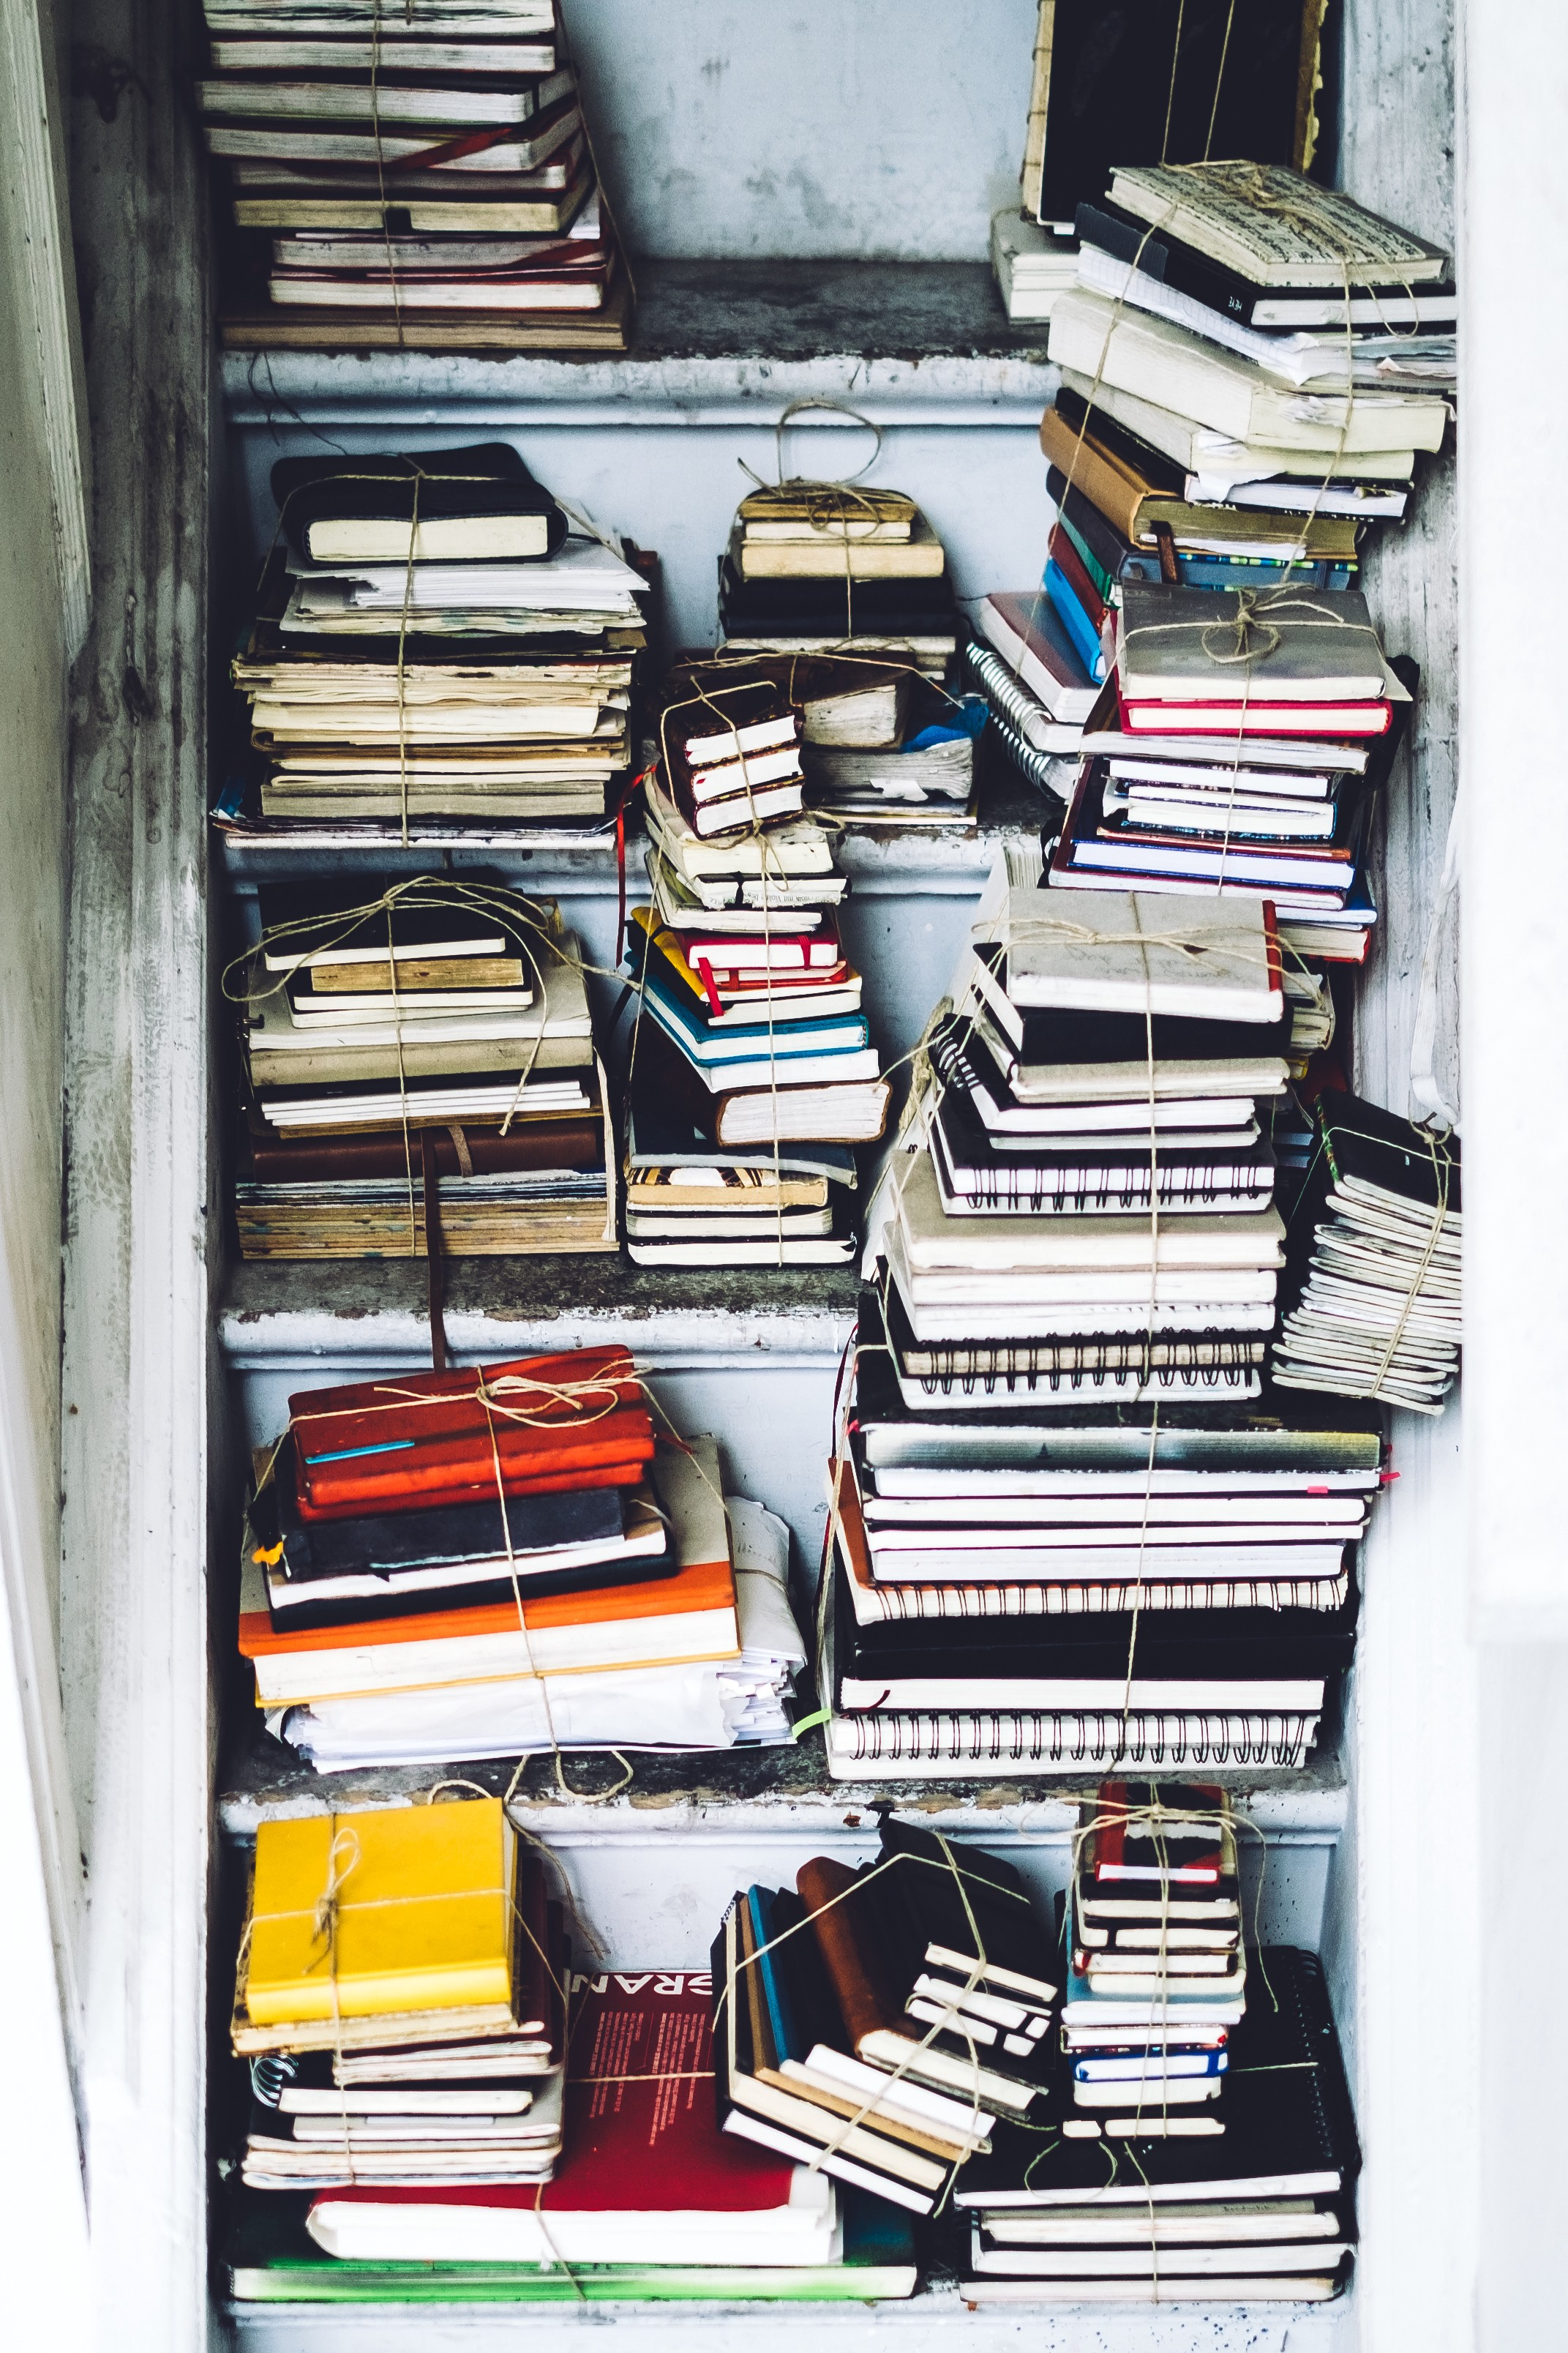 a closet full of spiral notebooks